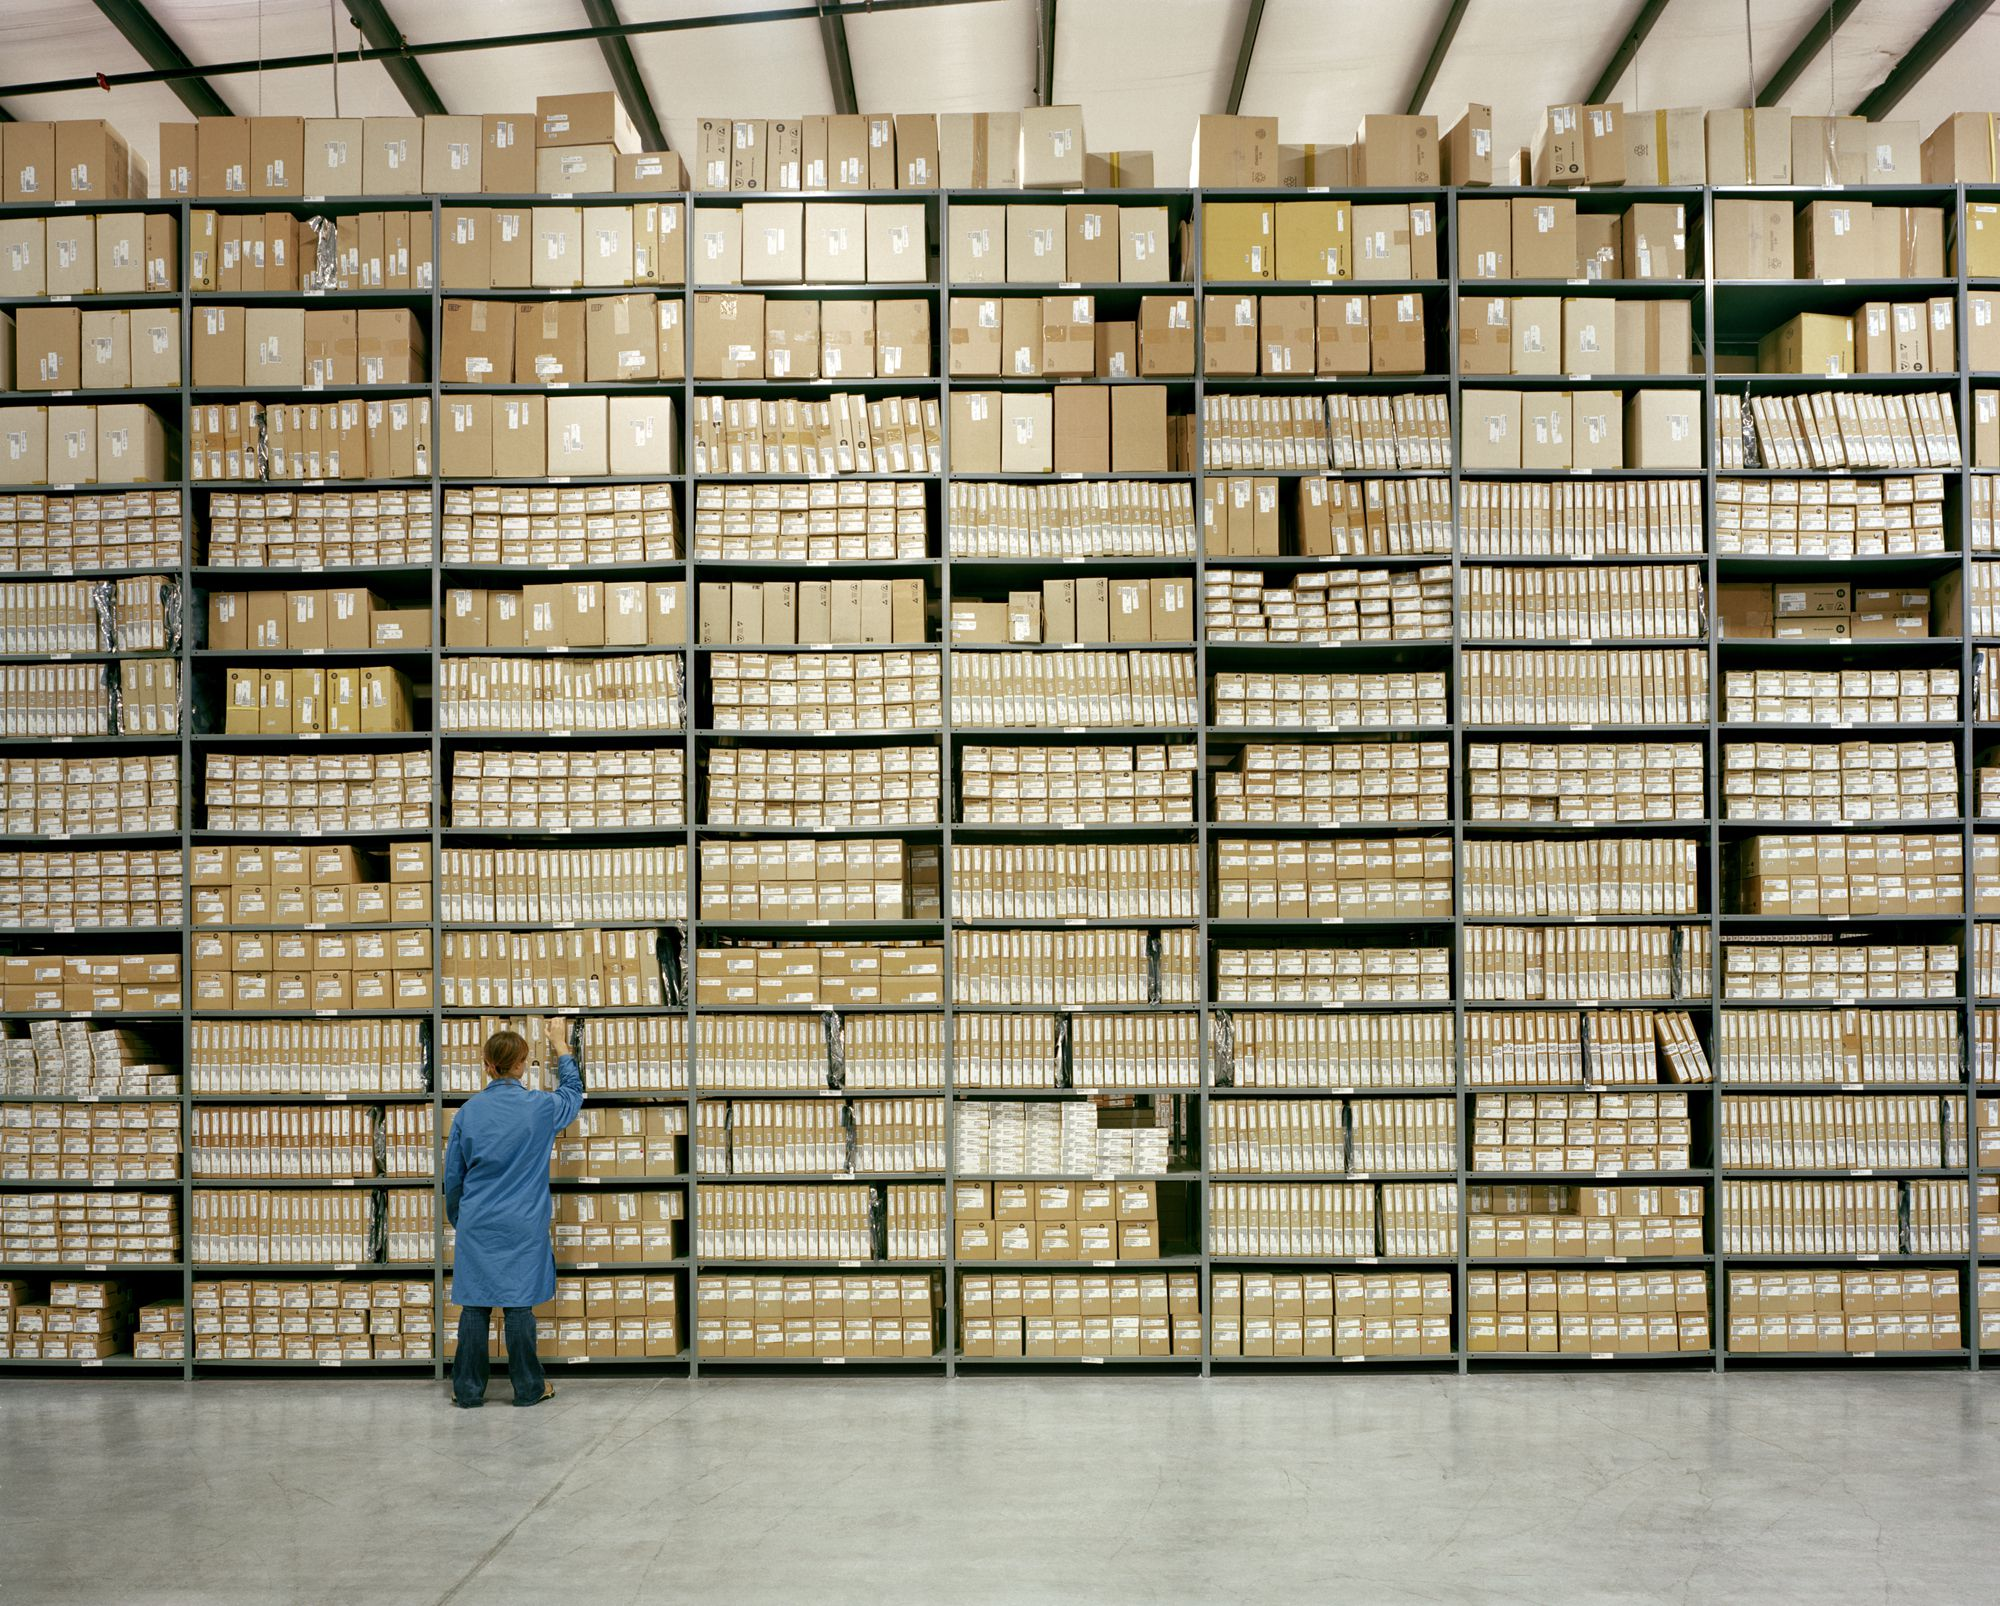 Boxes stacked neatly on shelving